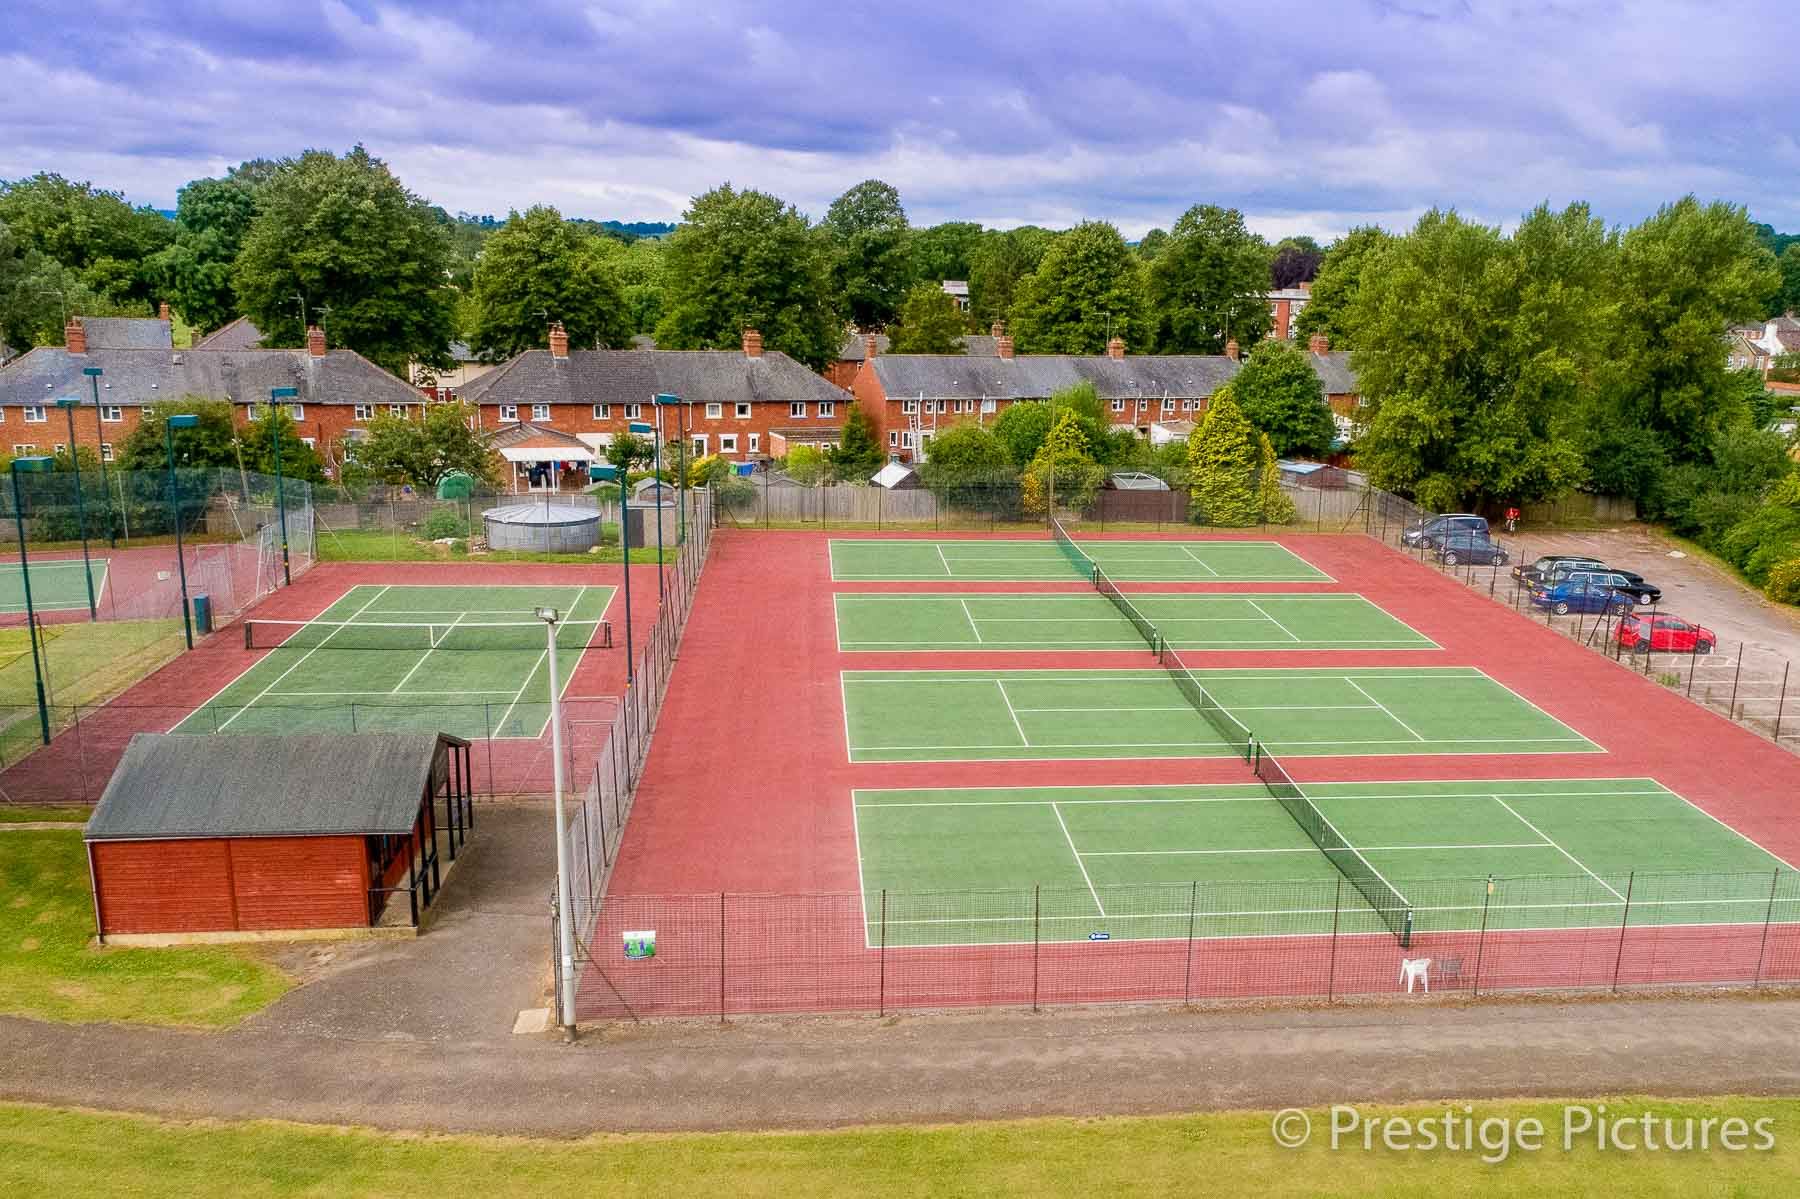 Tennis Courts in Banbury Oxfordshire